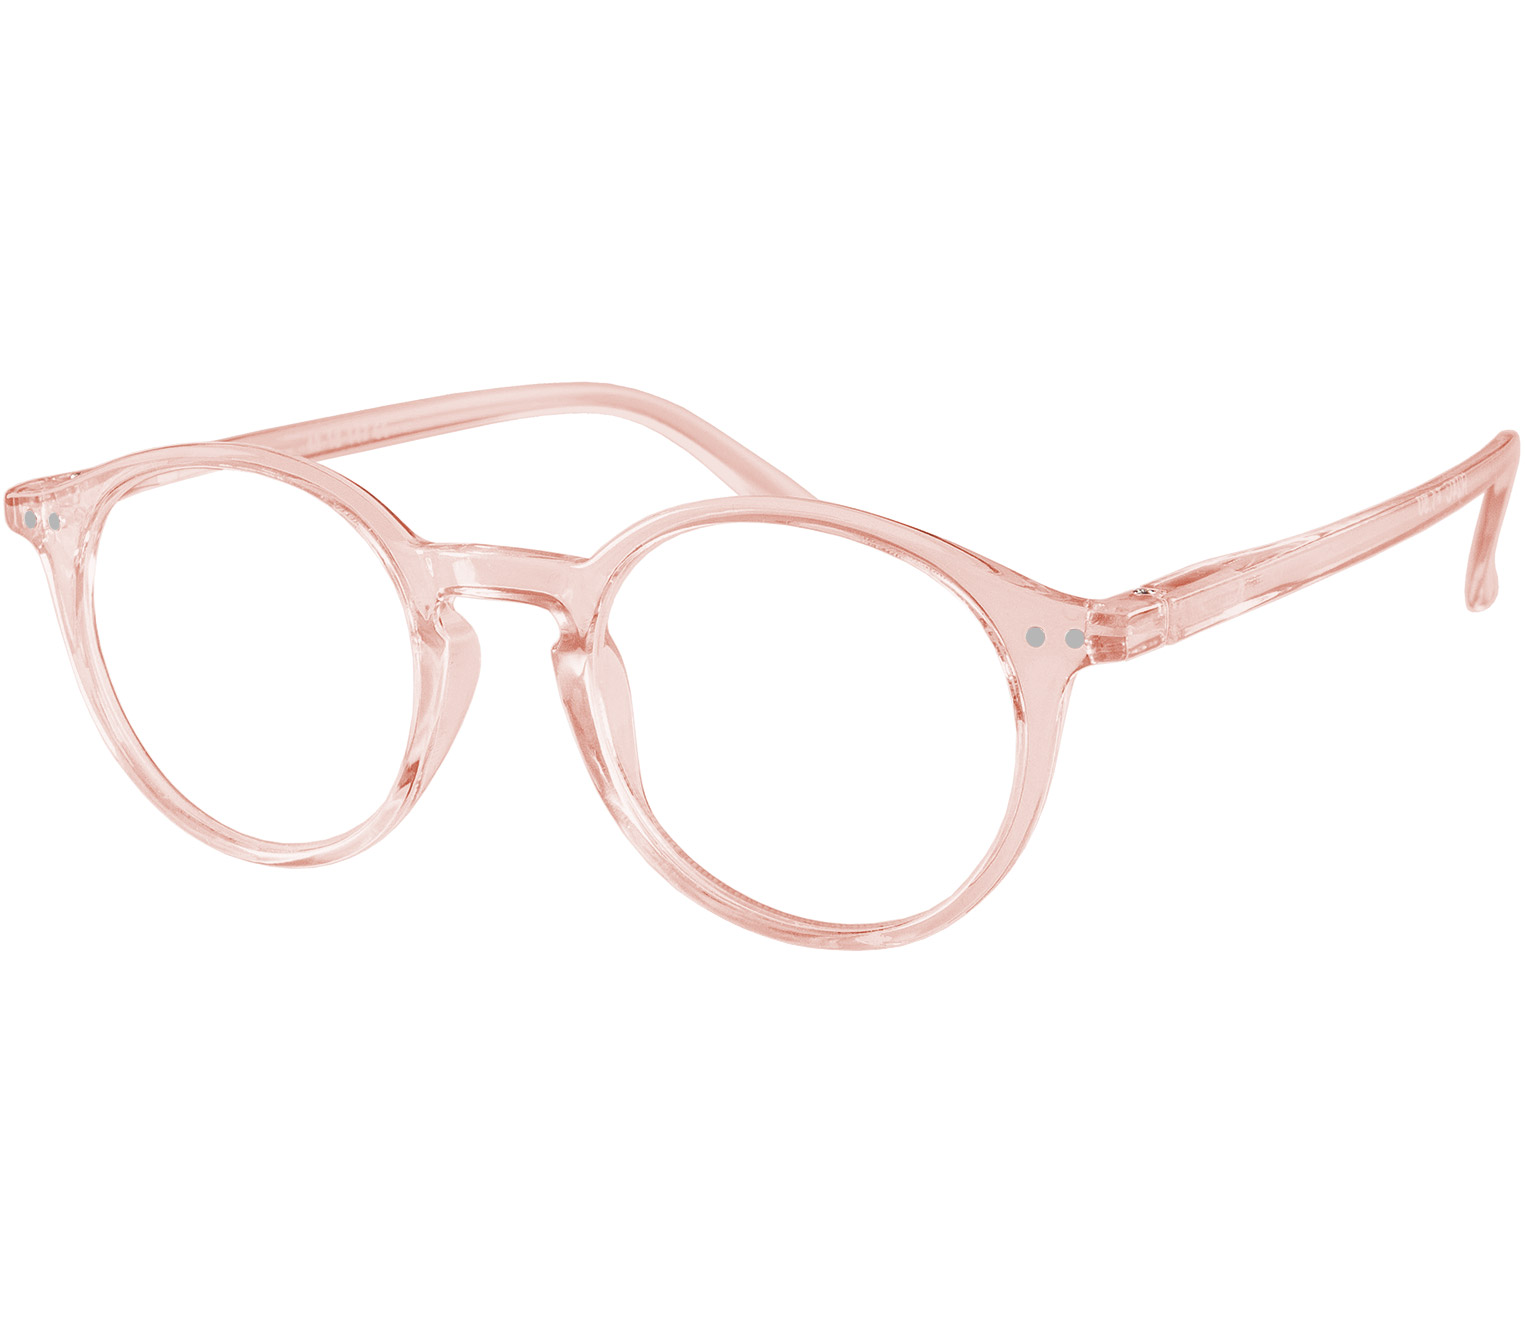 Main Image (Angle) - Oskar (Pink) Retro Reading Glasses